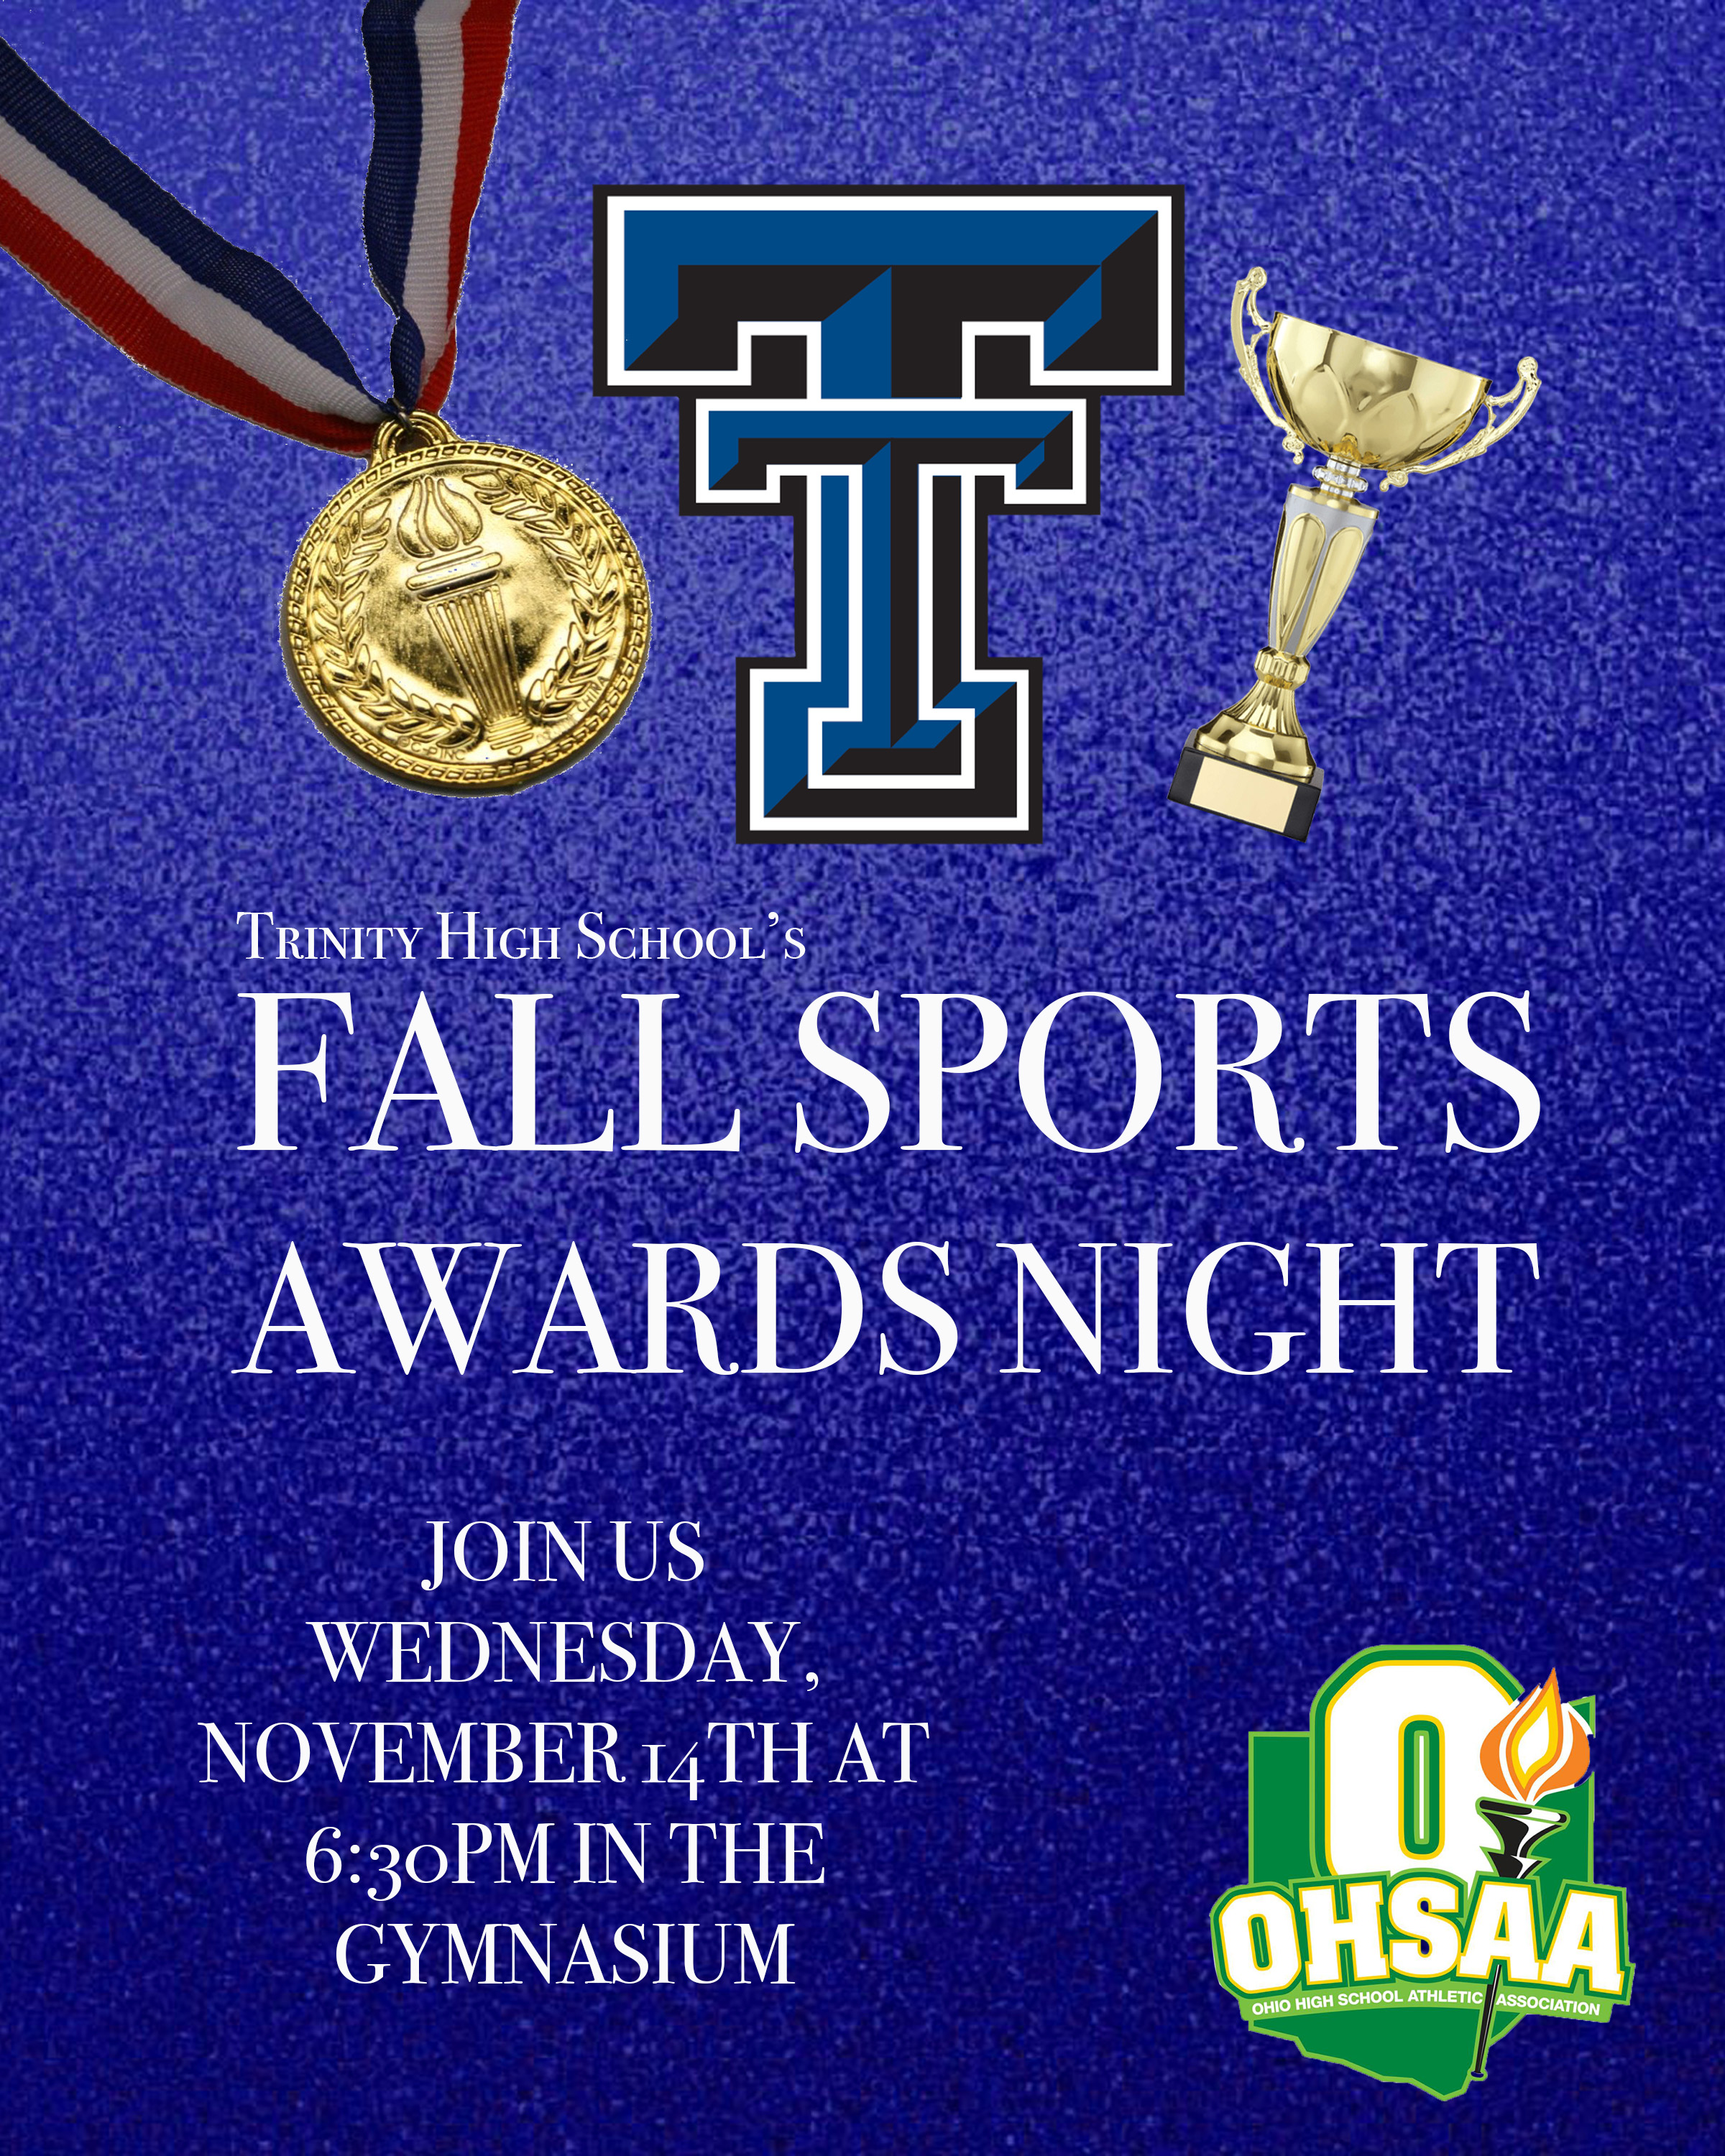 FALL SPORTS AWARDS NIGHT: